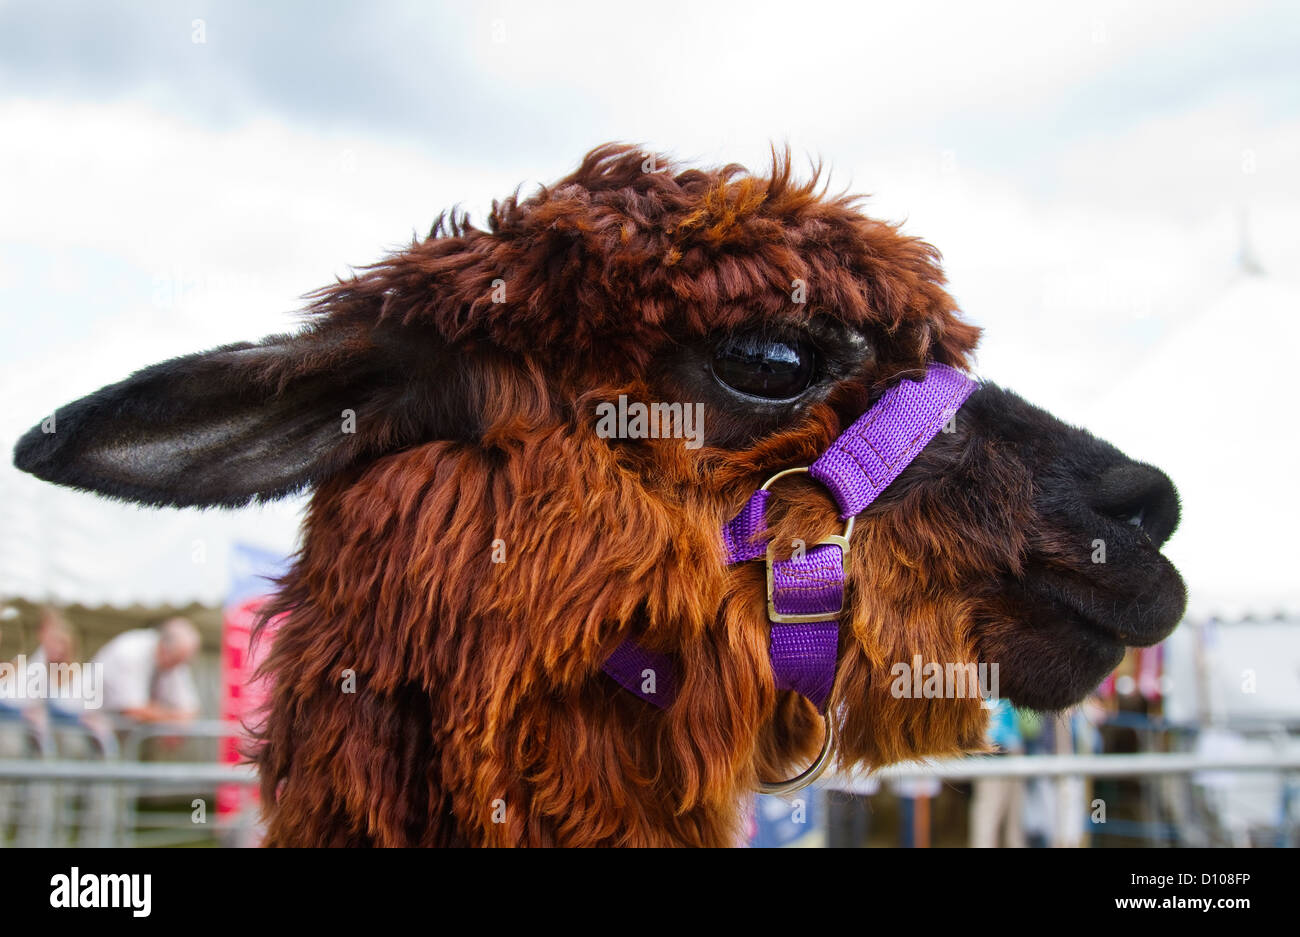 Alpaca , head shot, looking over gate at a country show, Devon UK - Stock Image